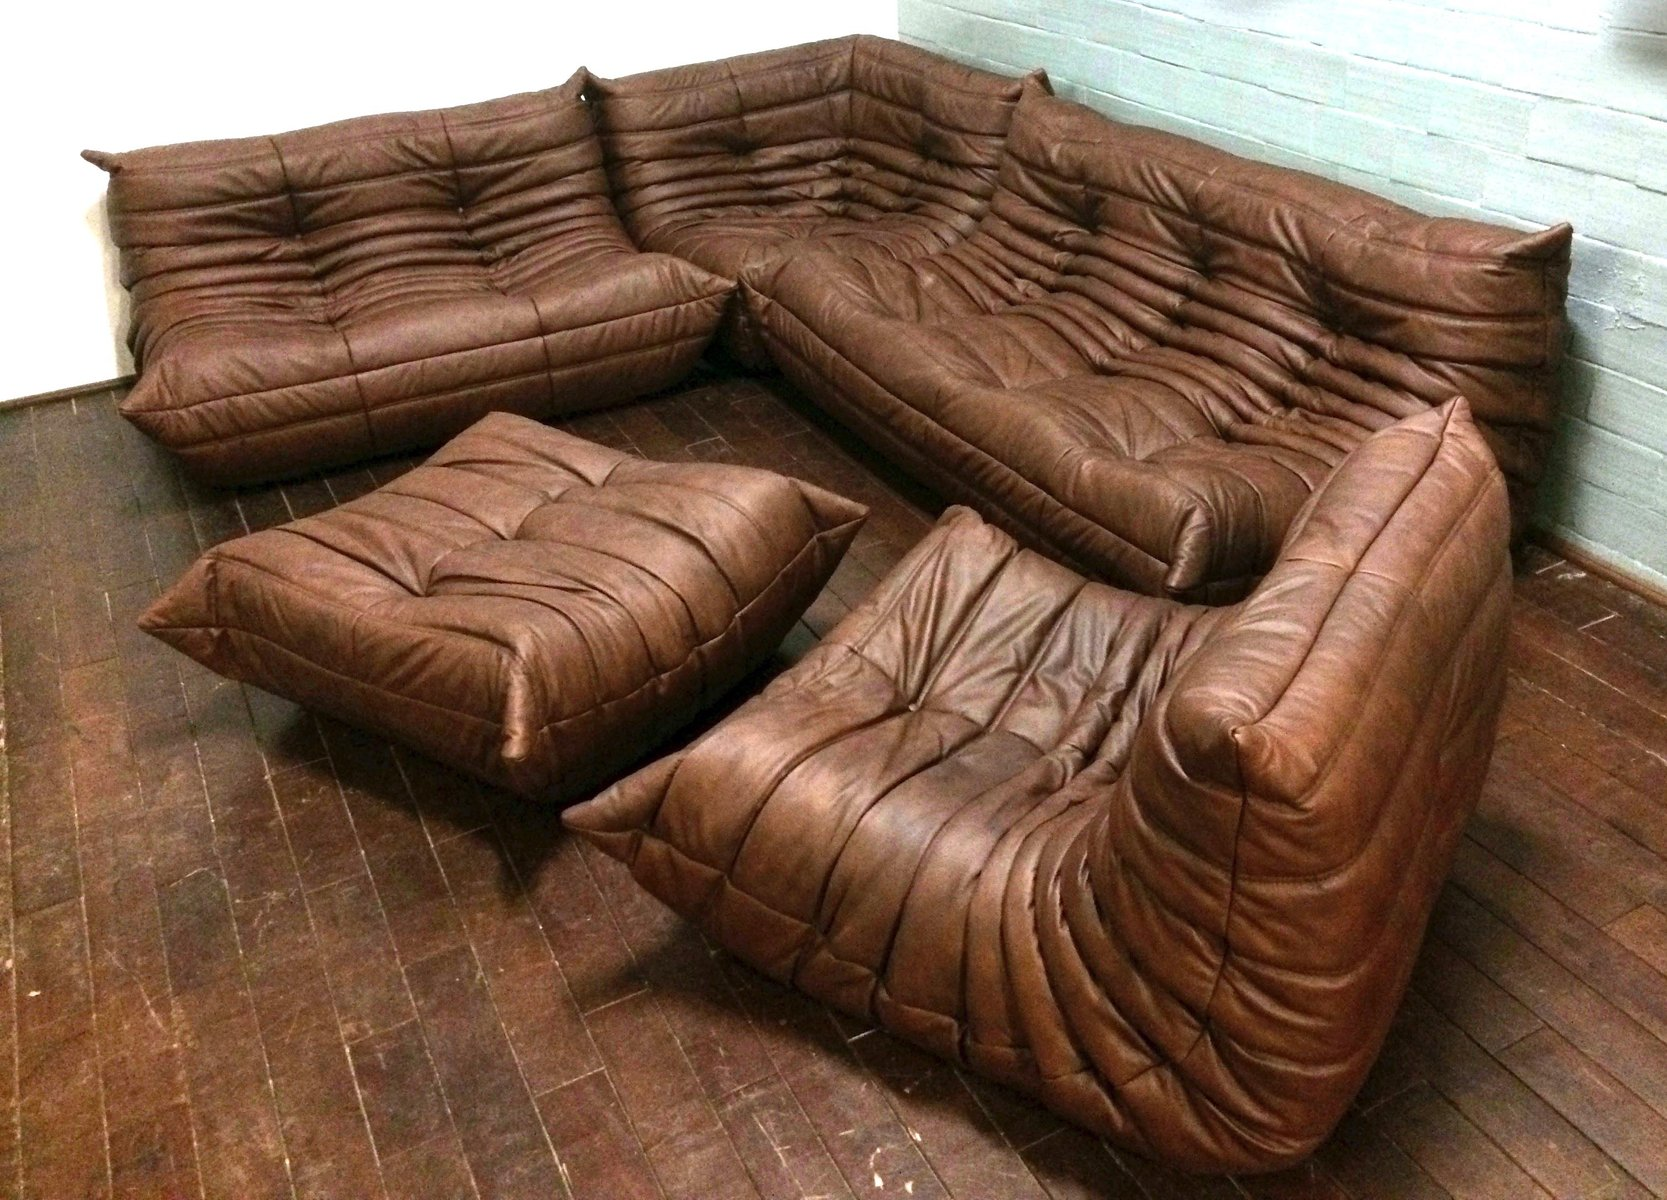 Vintage togo leather living room set by michel ducaroy for for Housse togo ligne roset